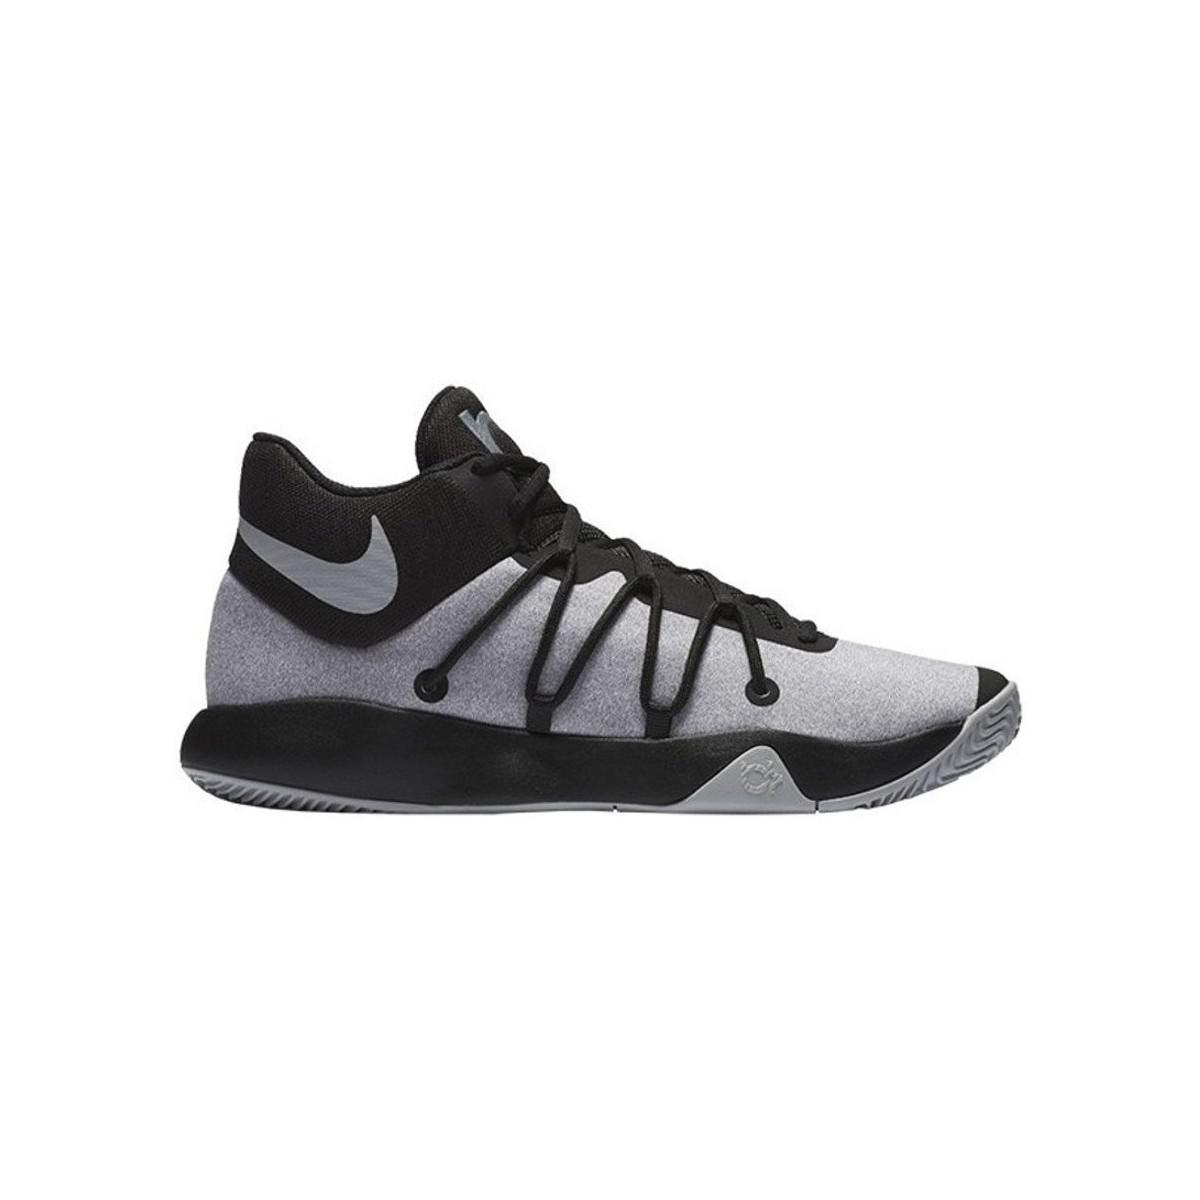 6cc983235903 Nike Kd Trey 5 V Men s Shoes (trainers) In White in White for Men - Lyst